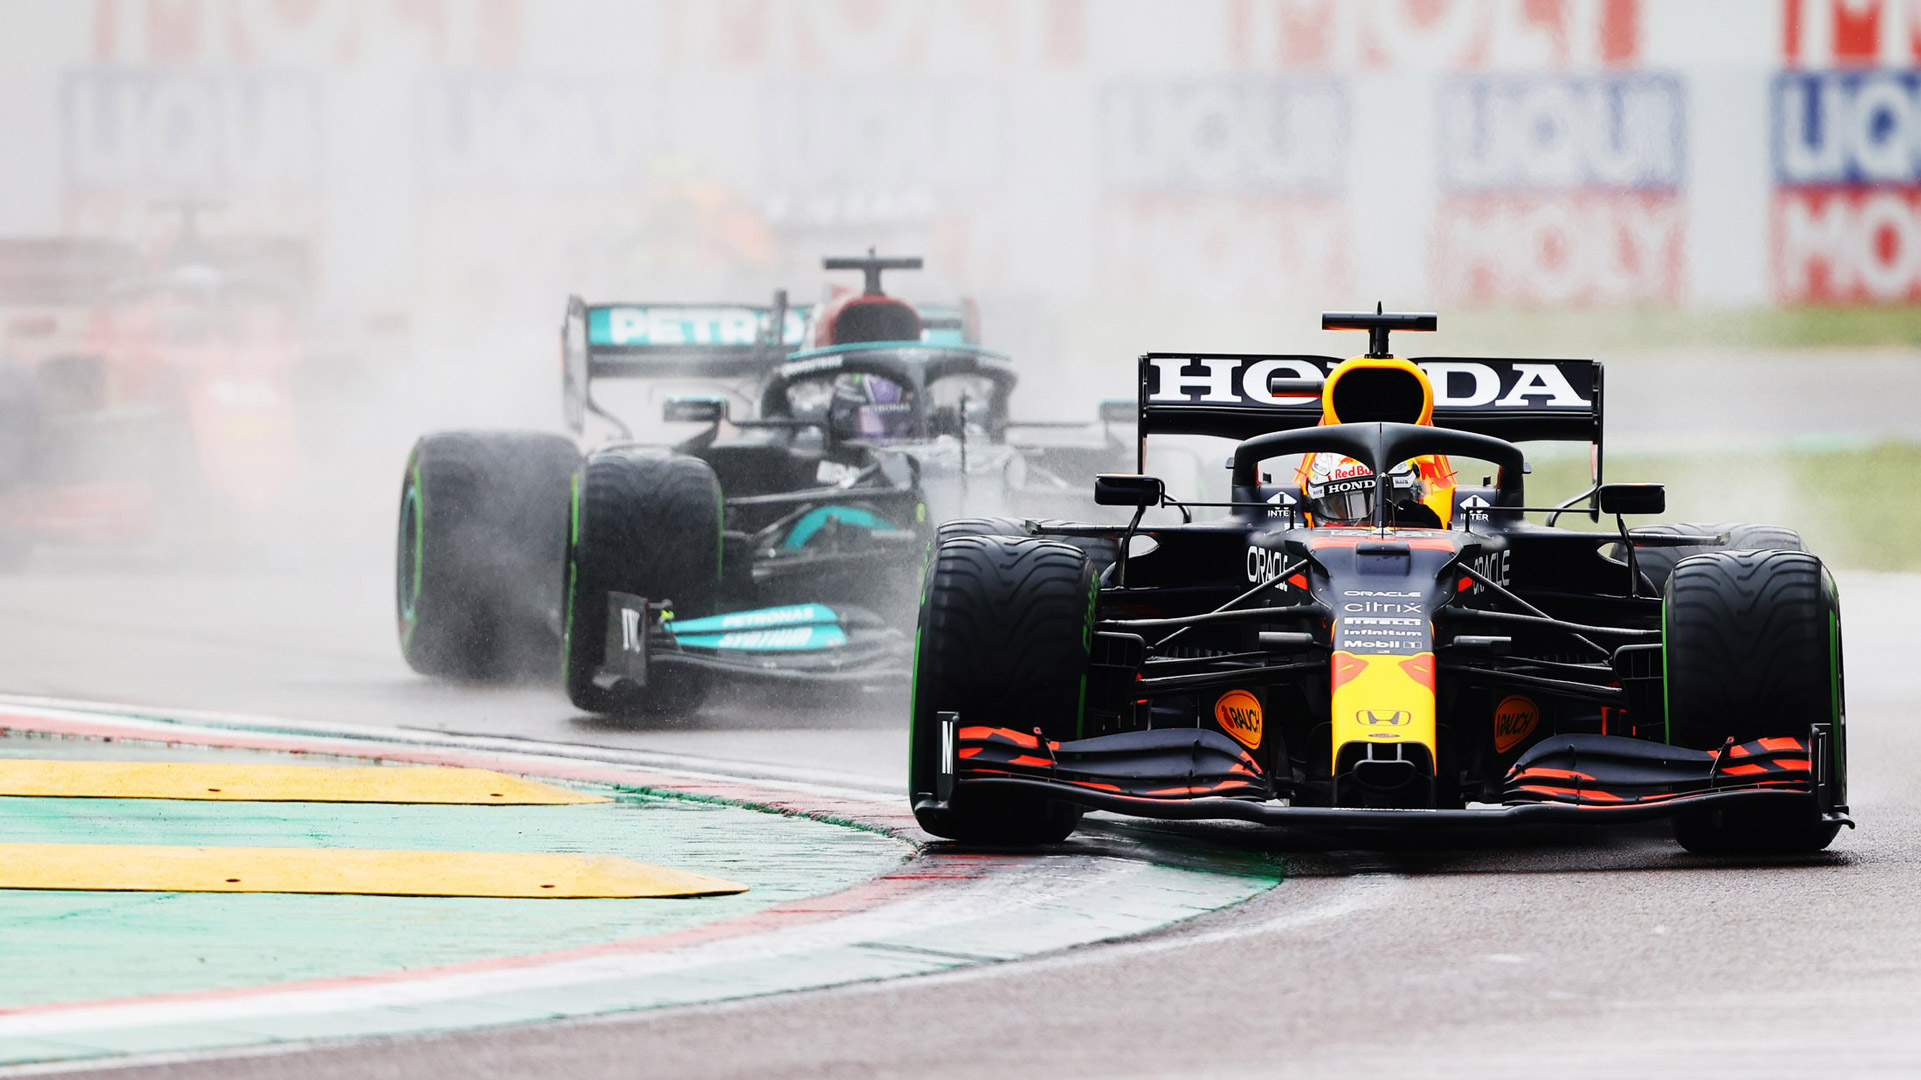 Verstappen takes victory from Hamilton and Norris in action-packed Grand Prix at Imola - Formula 1 RSS UK